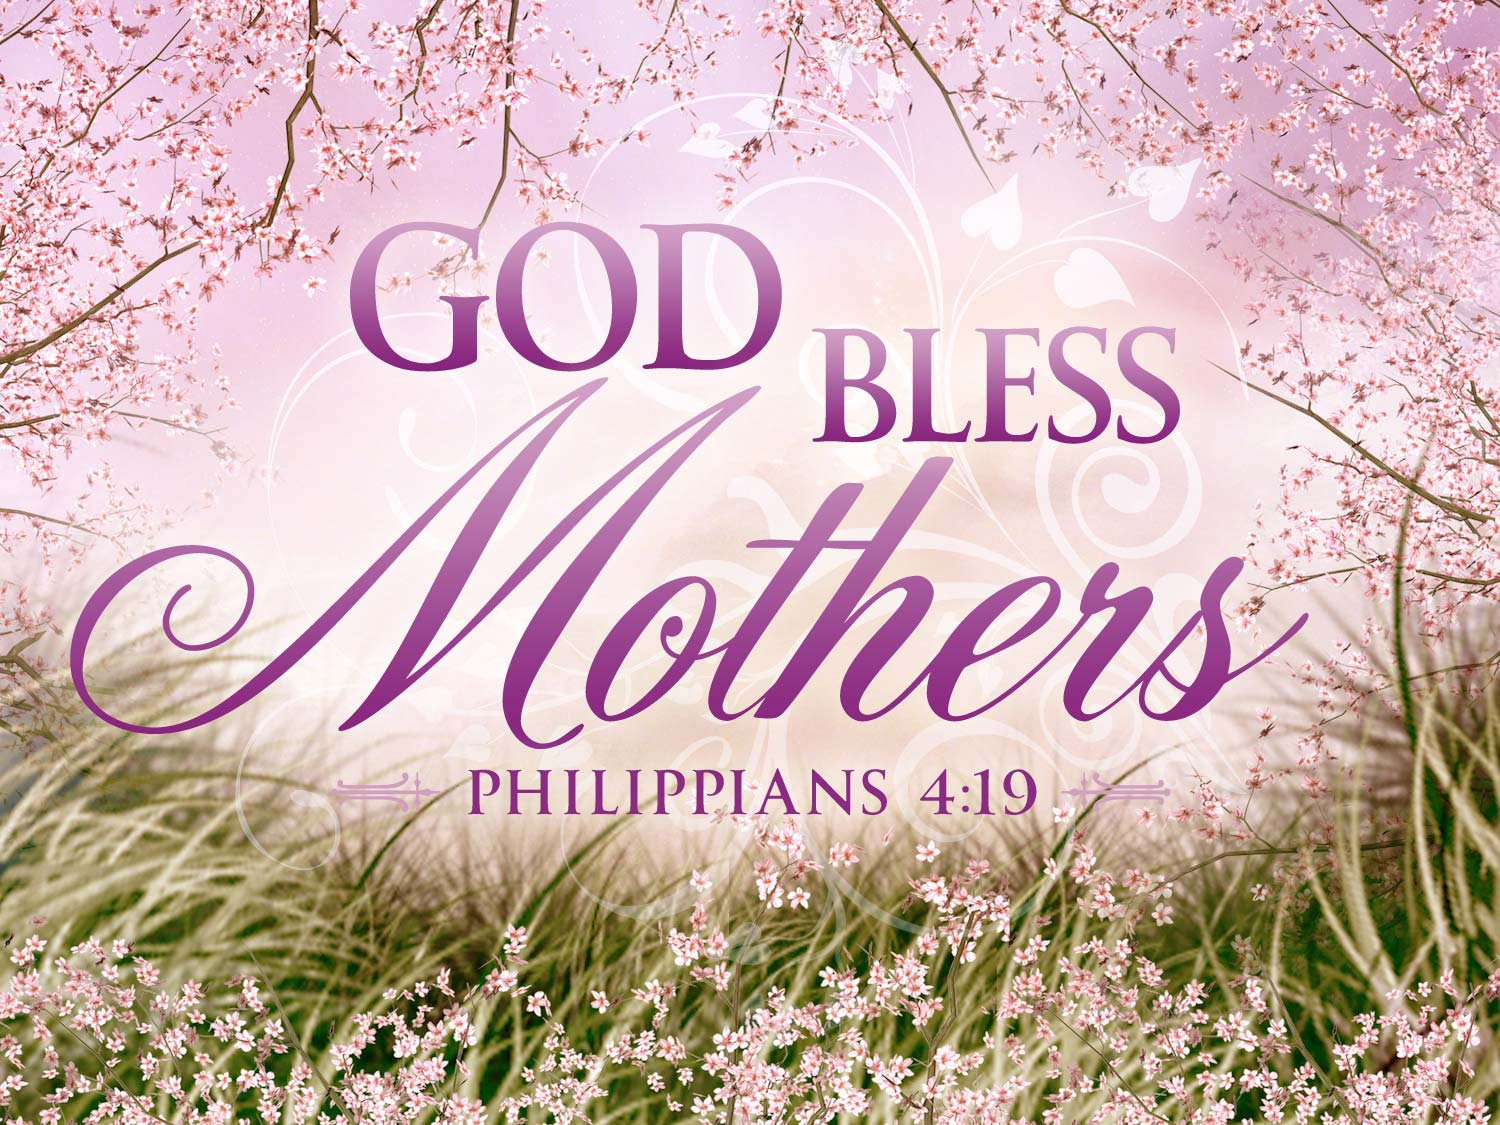 Happy Mothers Day 2013 Mothers Day Cards Wallpapers and Desktop 1500x1125